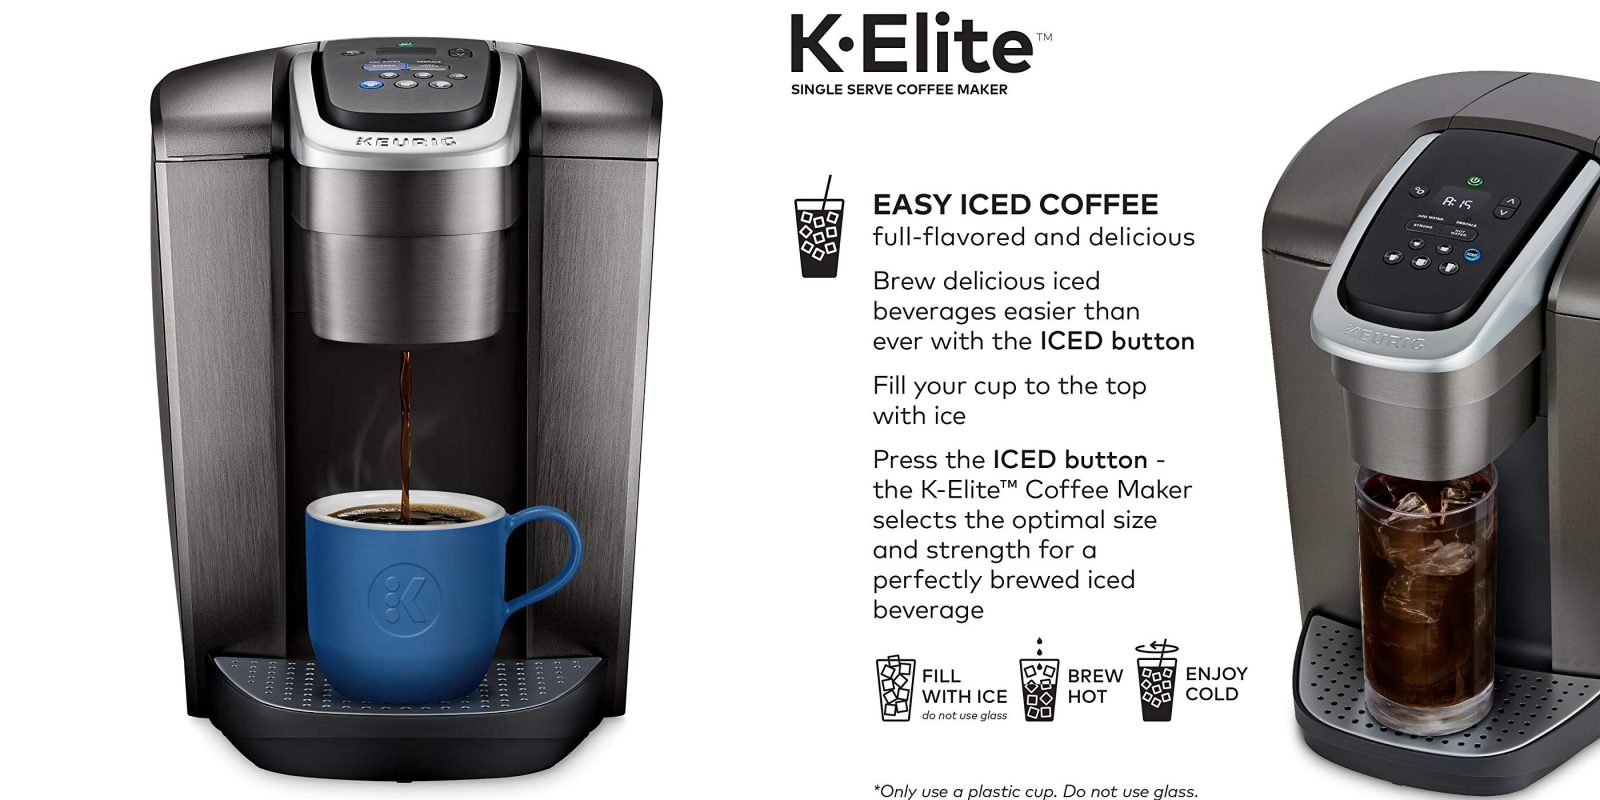 Keurig's K-Elite Single Serve Coffee Maker is now $97.50 at Amazon (All-time low, Reg. $170)